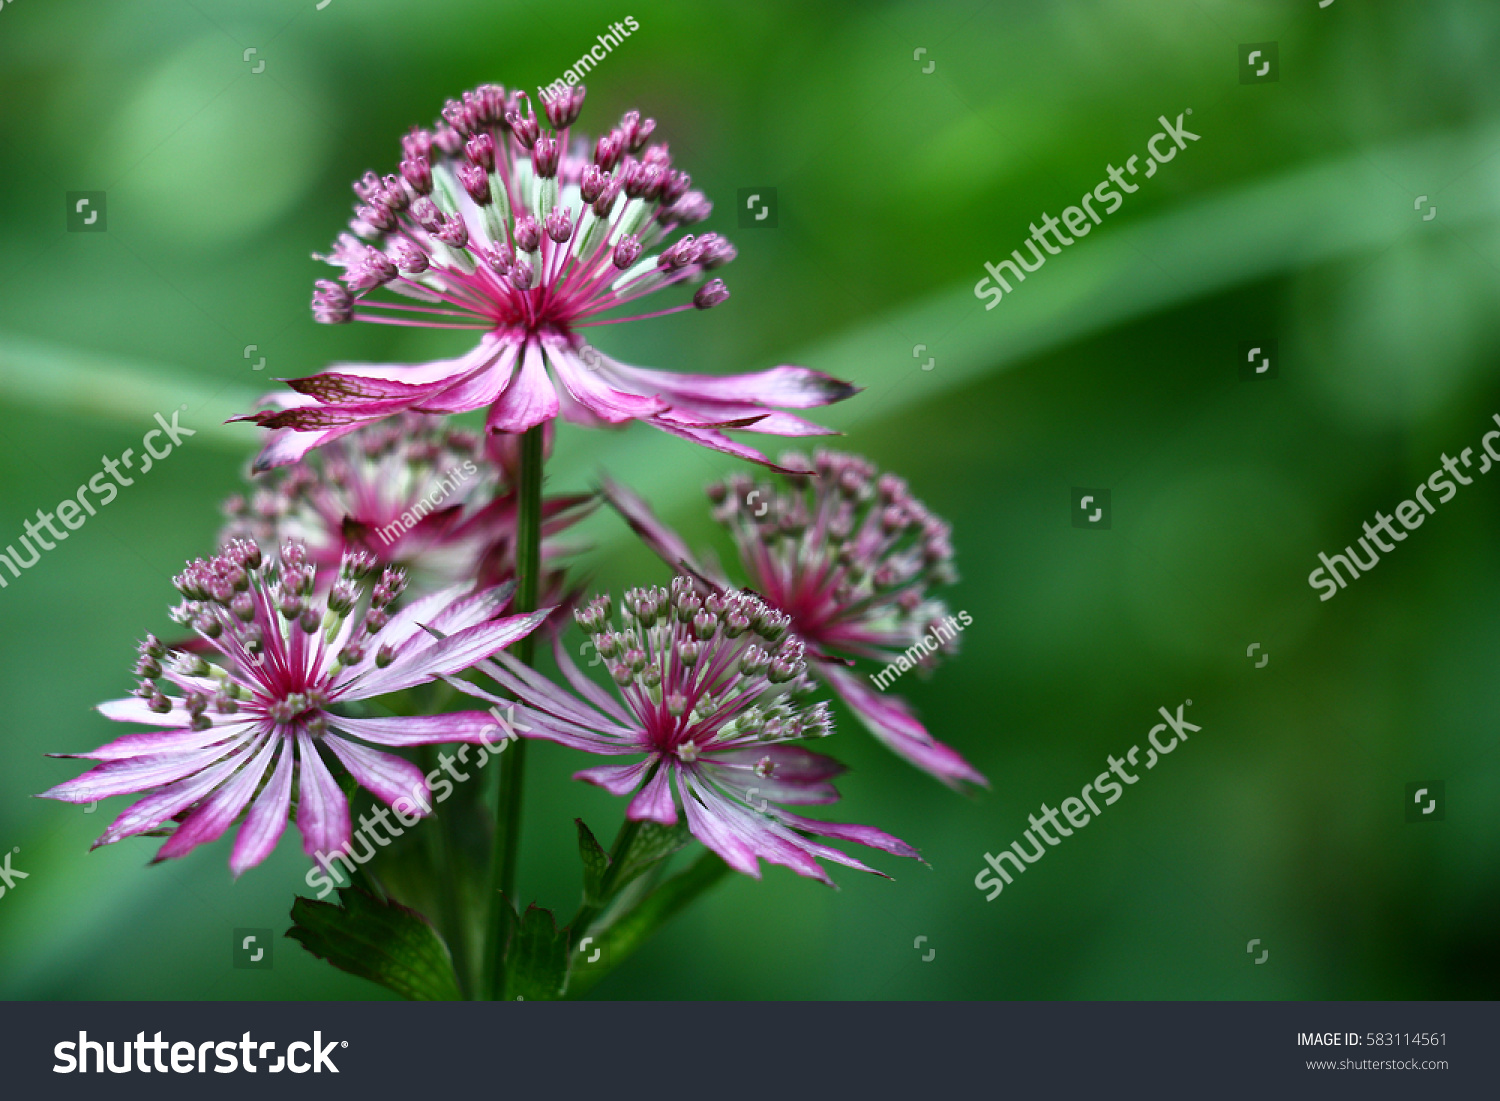 Unusual Flowers Astrantia With Narrow Petals Of White Pink Color On